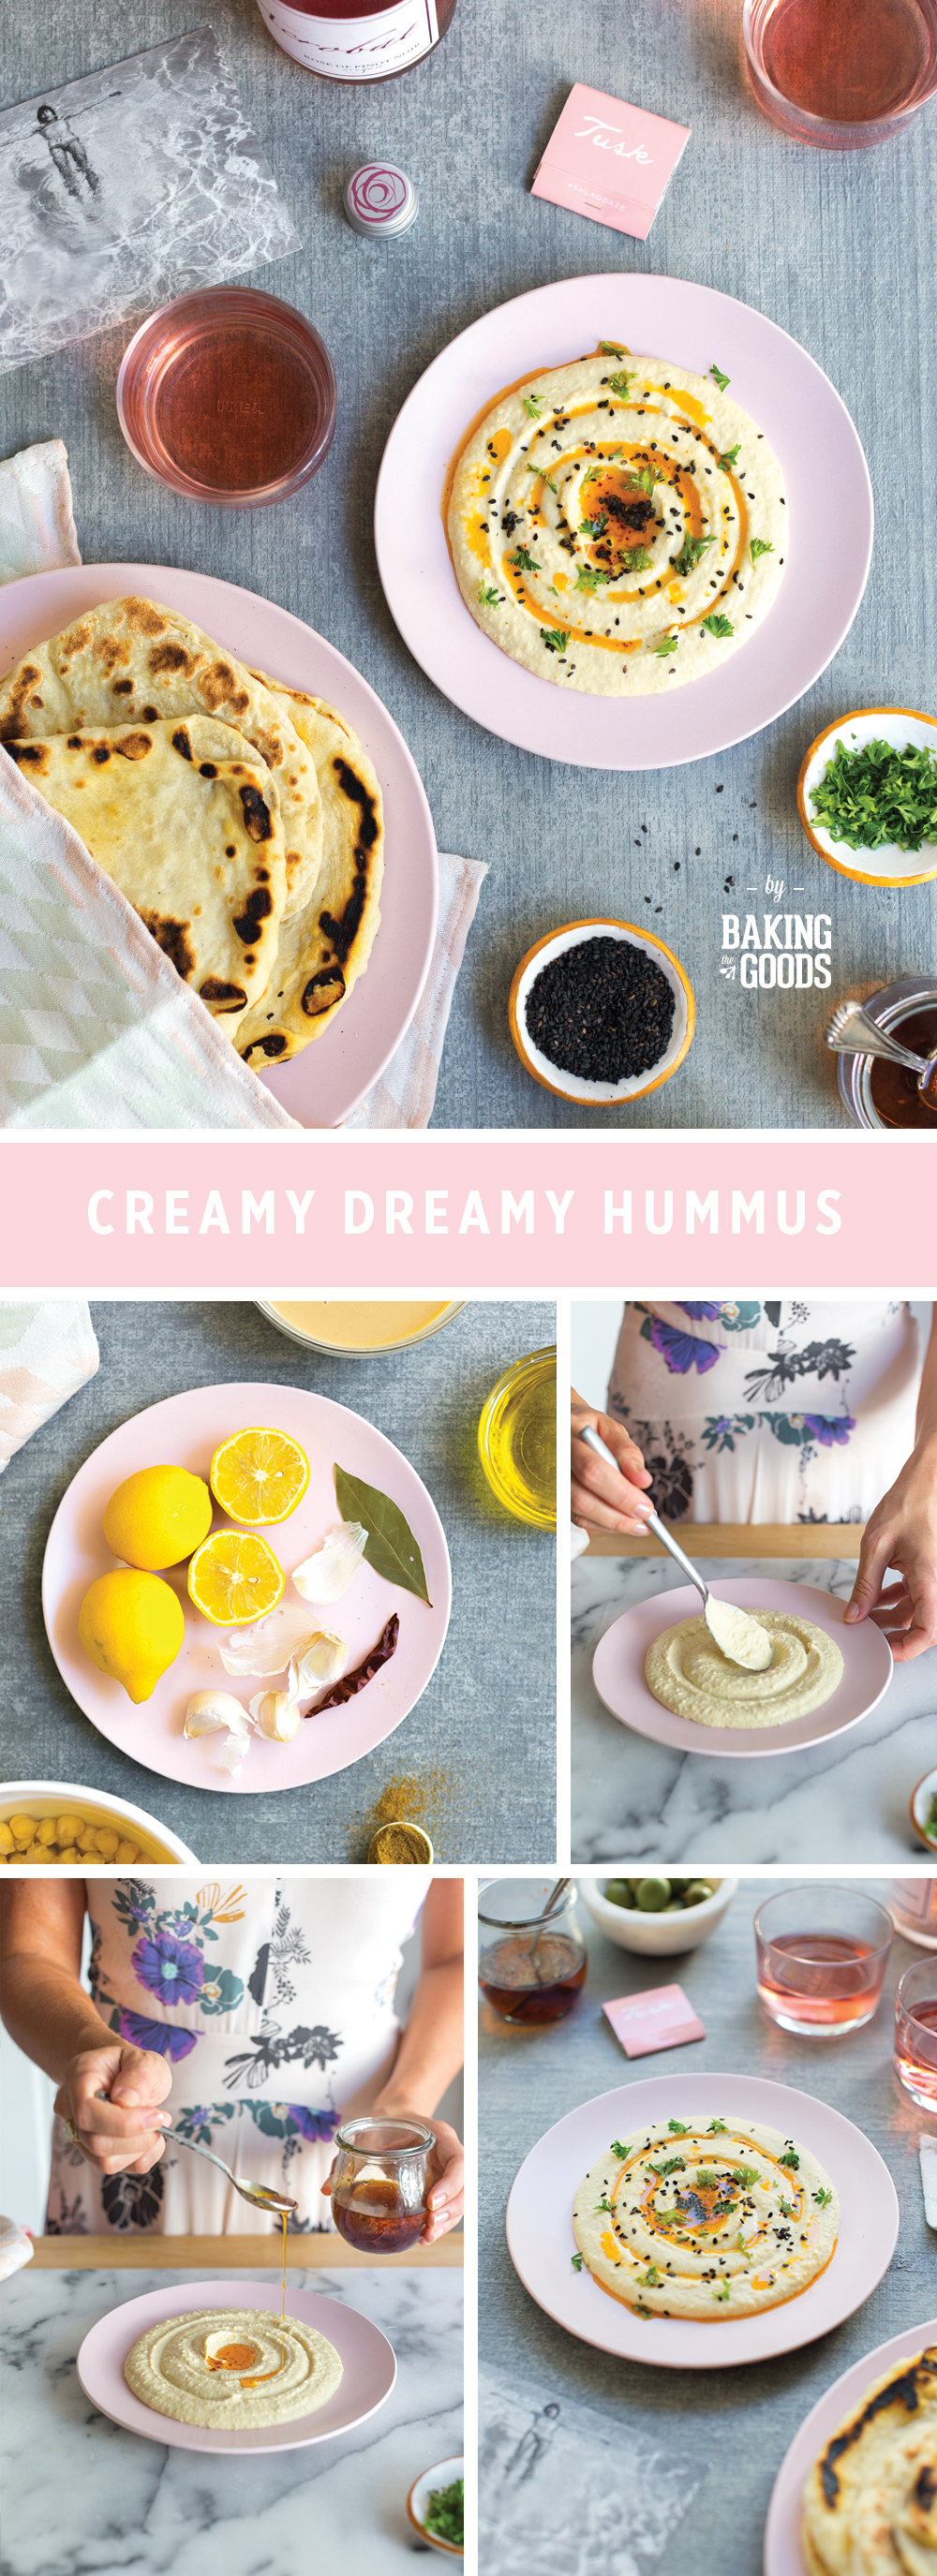 Creamy Dreamy Hummus by Baking The Goods.